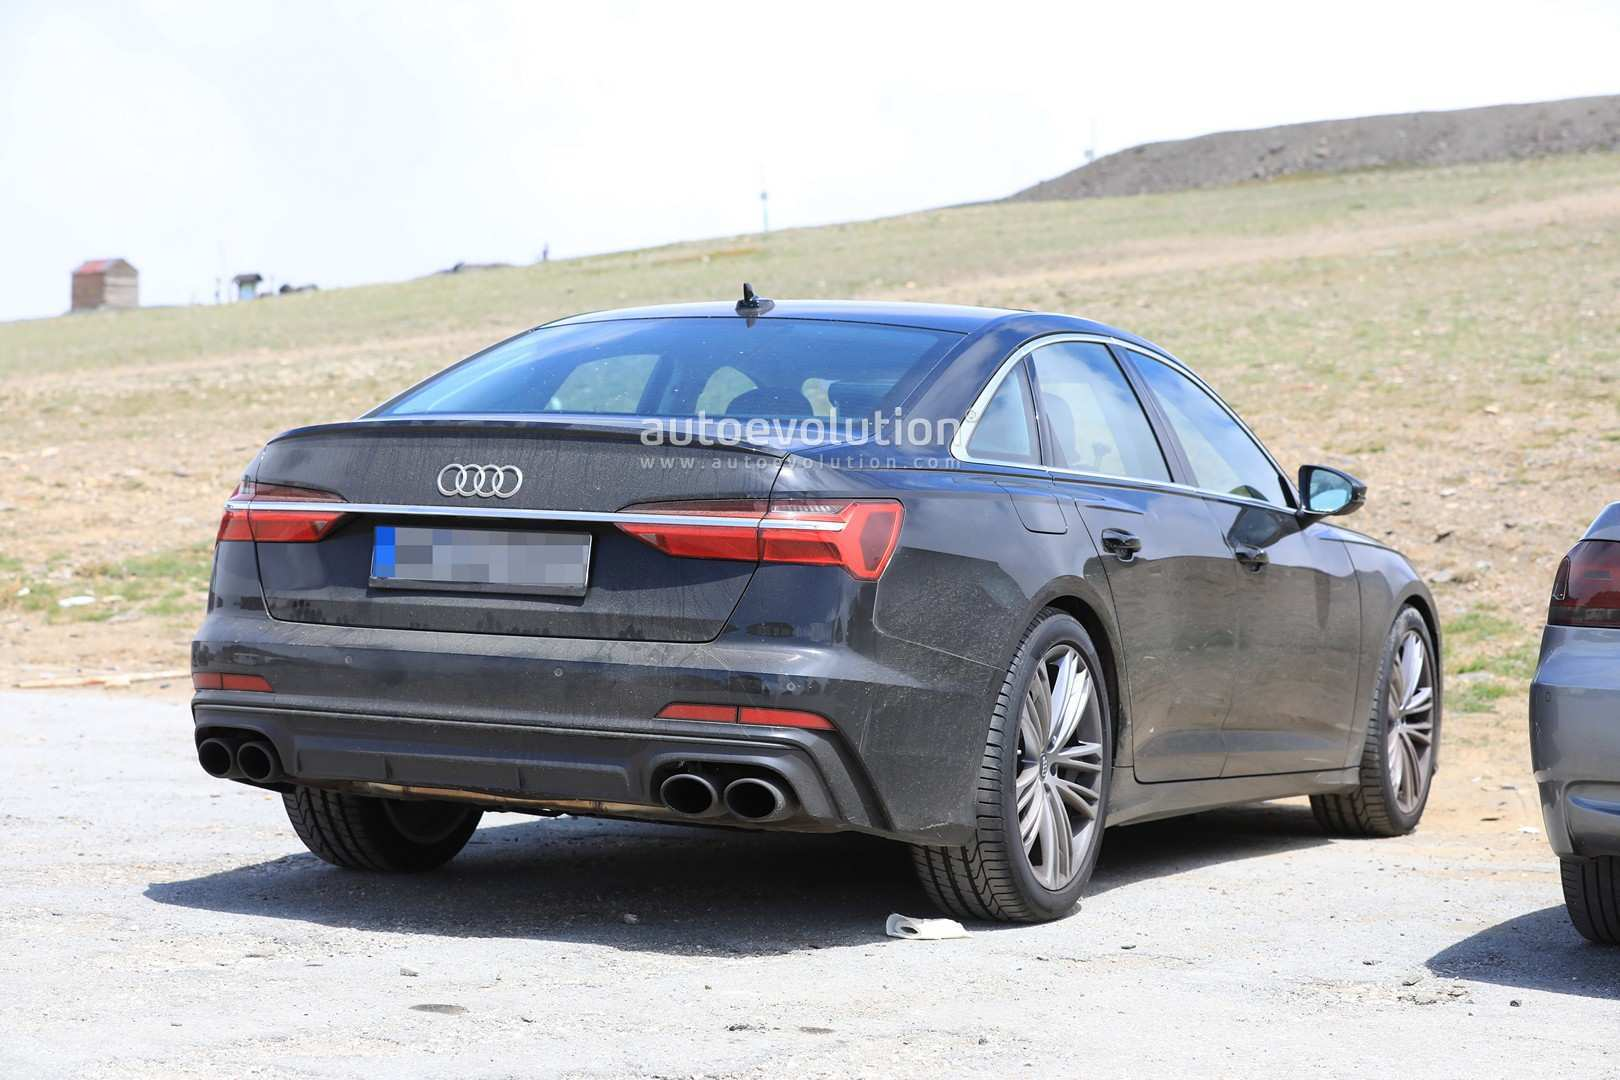 96 All New 2019 Audi S6 Research New